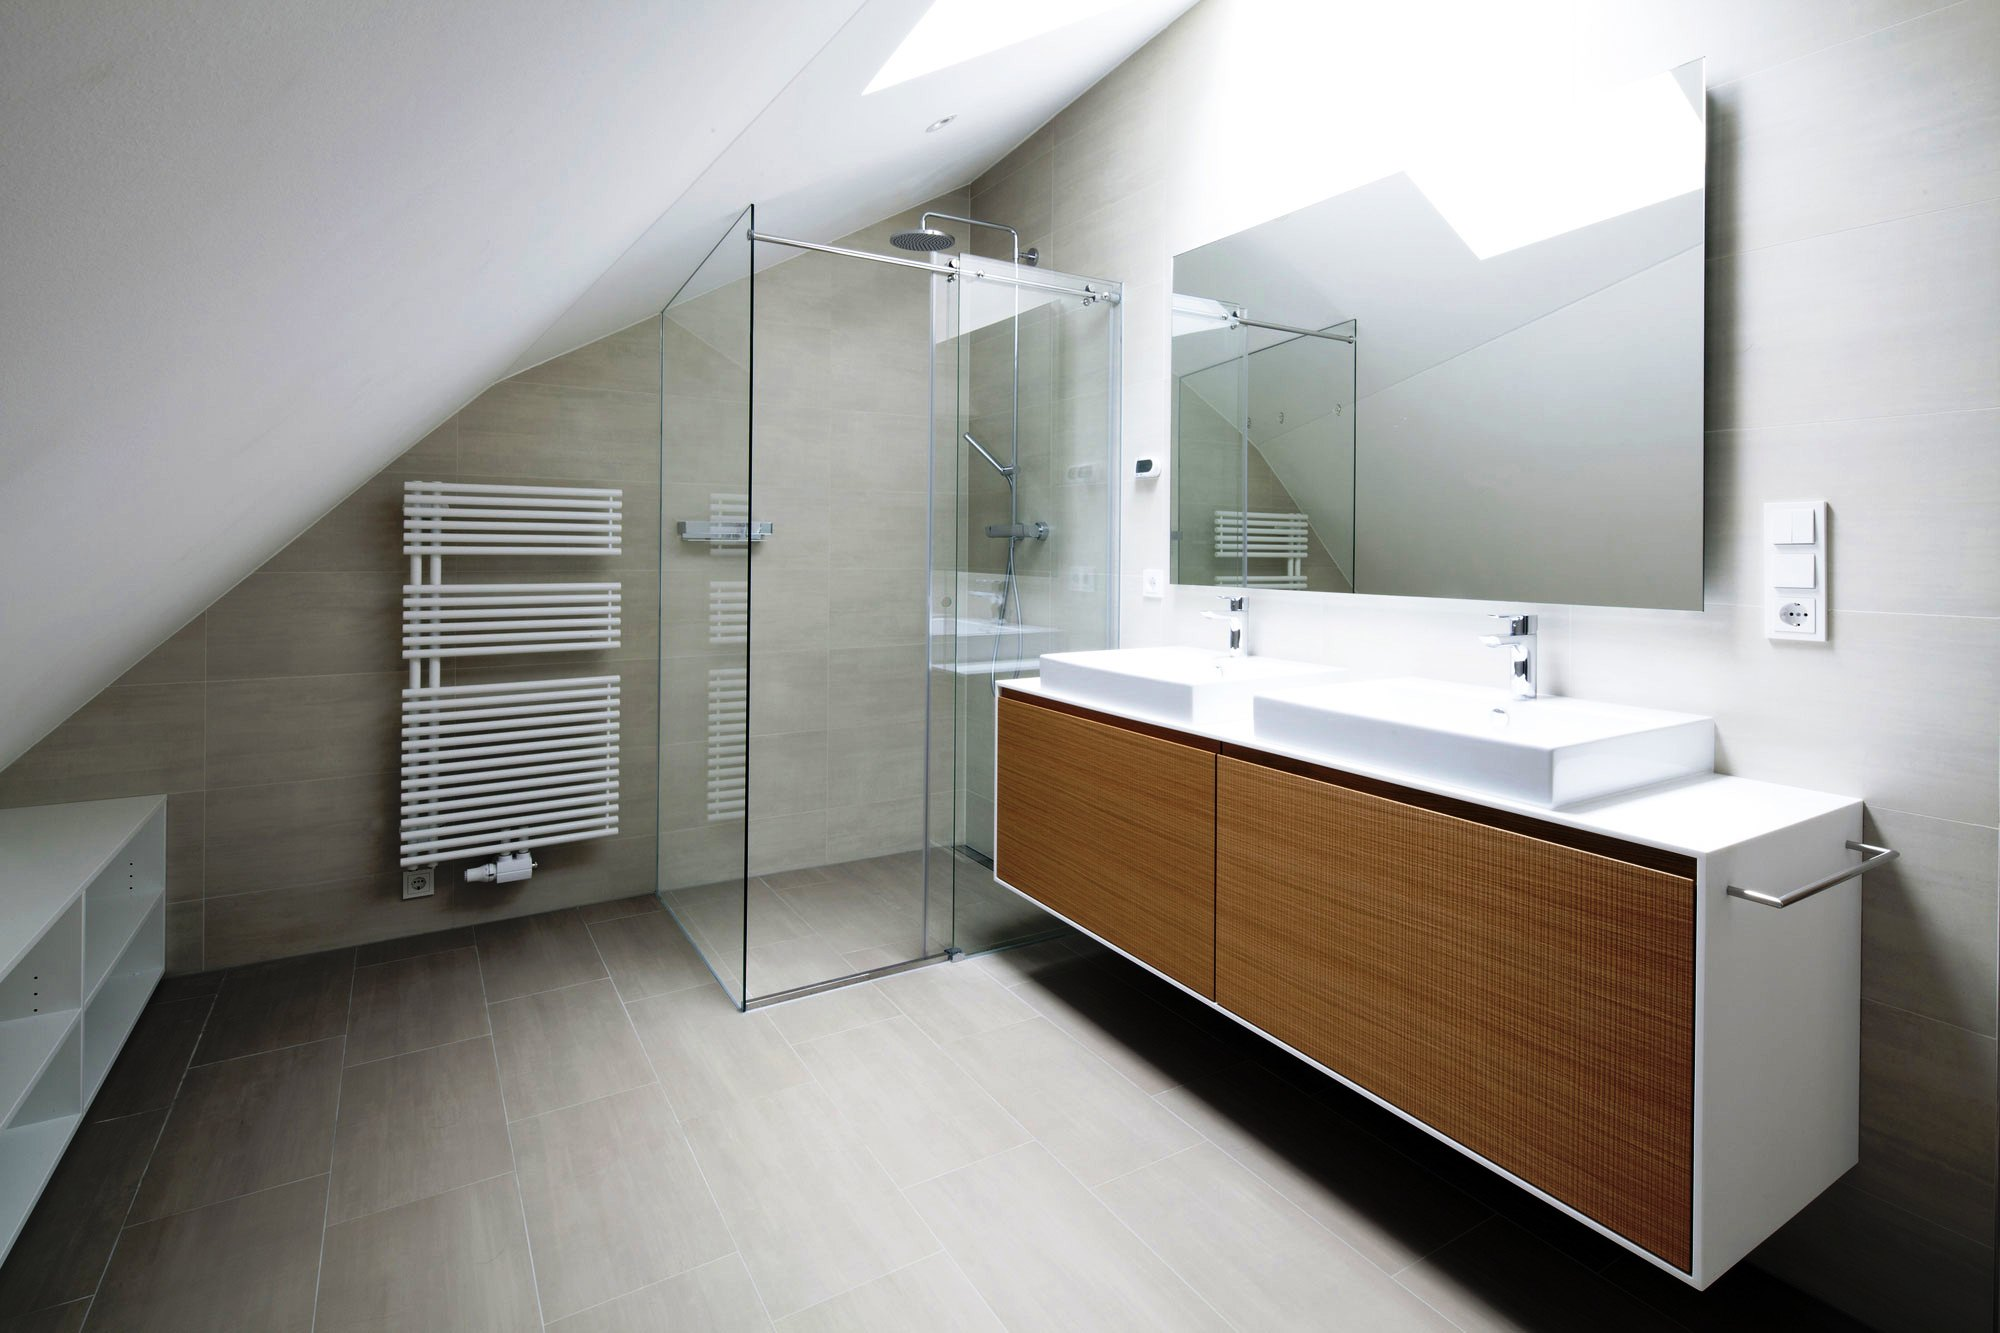 Bathroom-Space-with-Glass-Shower-Room-and-Modern-Vanity-Furniture